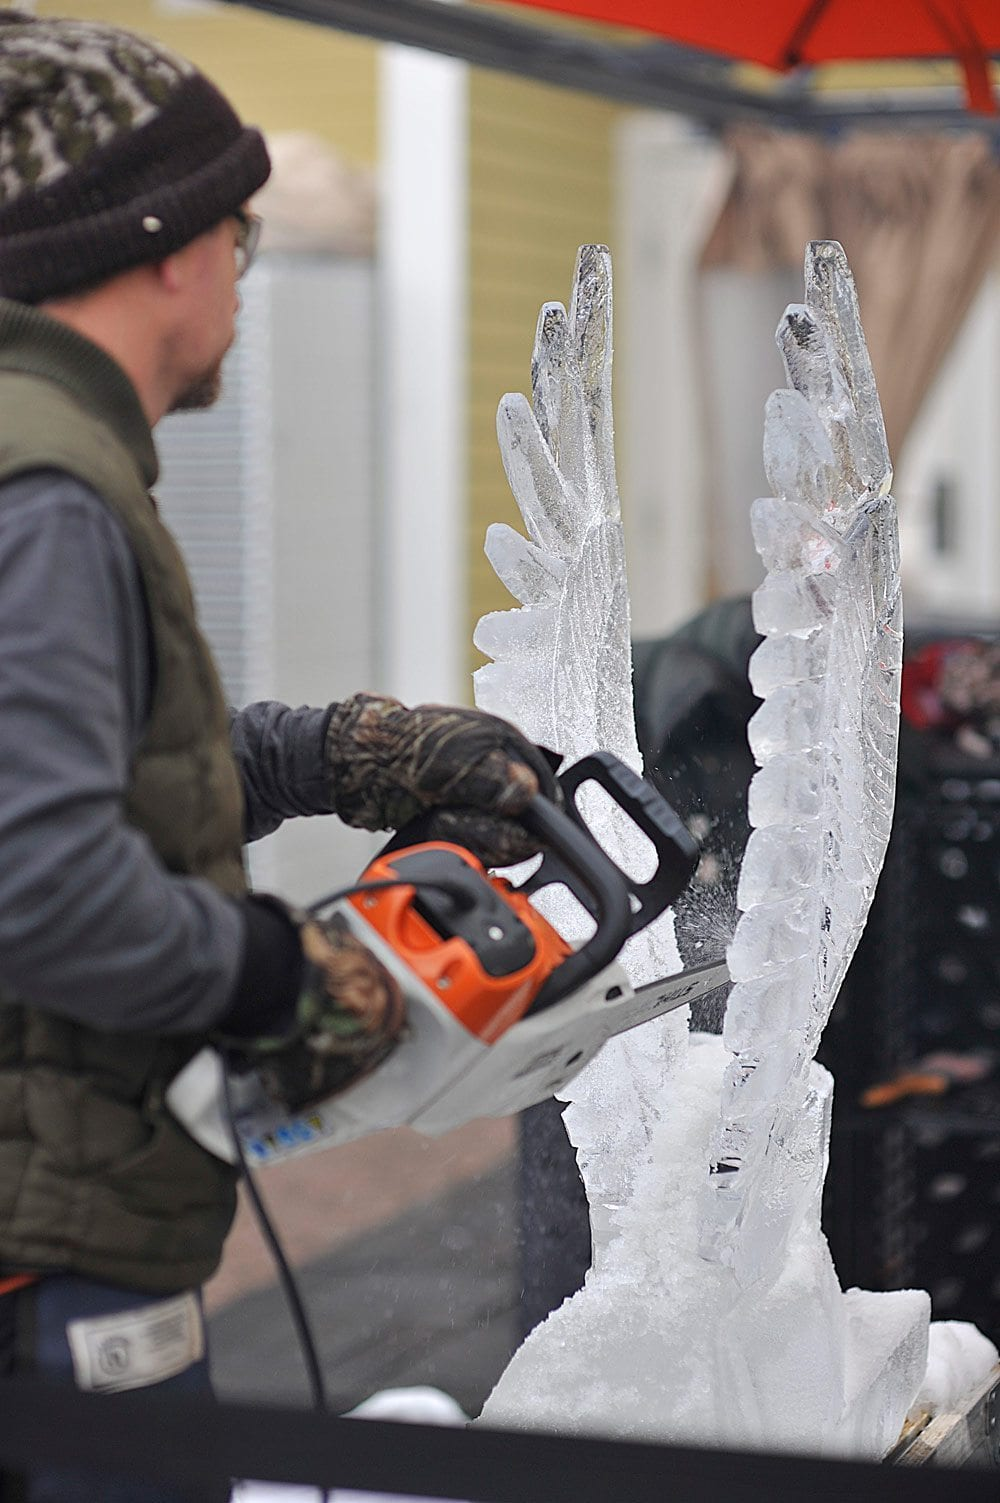 Ice sculptor using chainsaw to create ice bird.